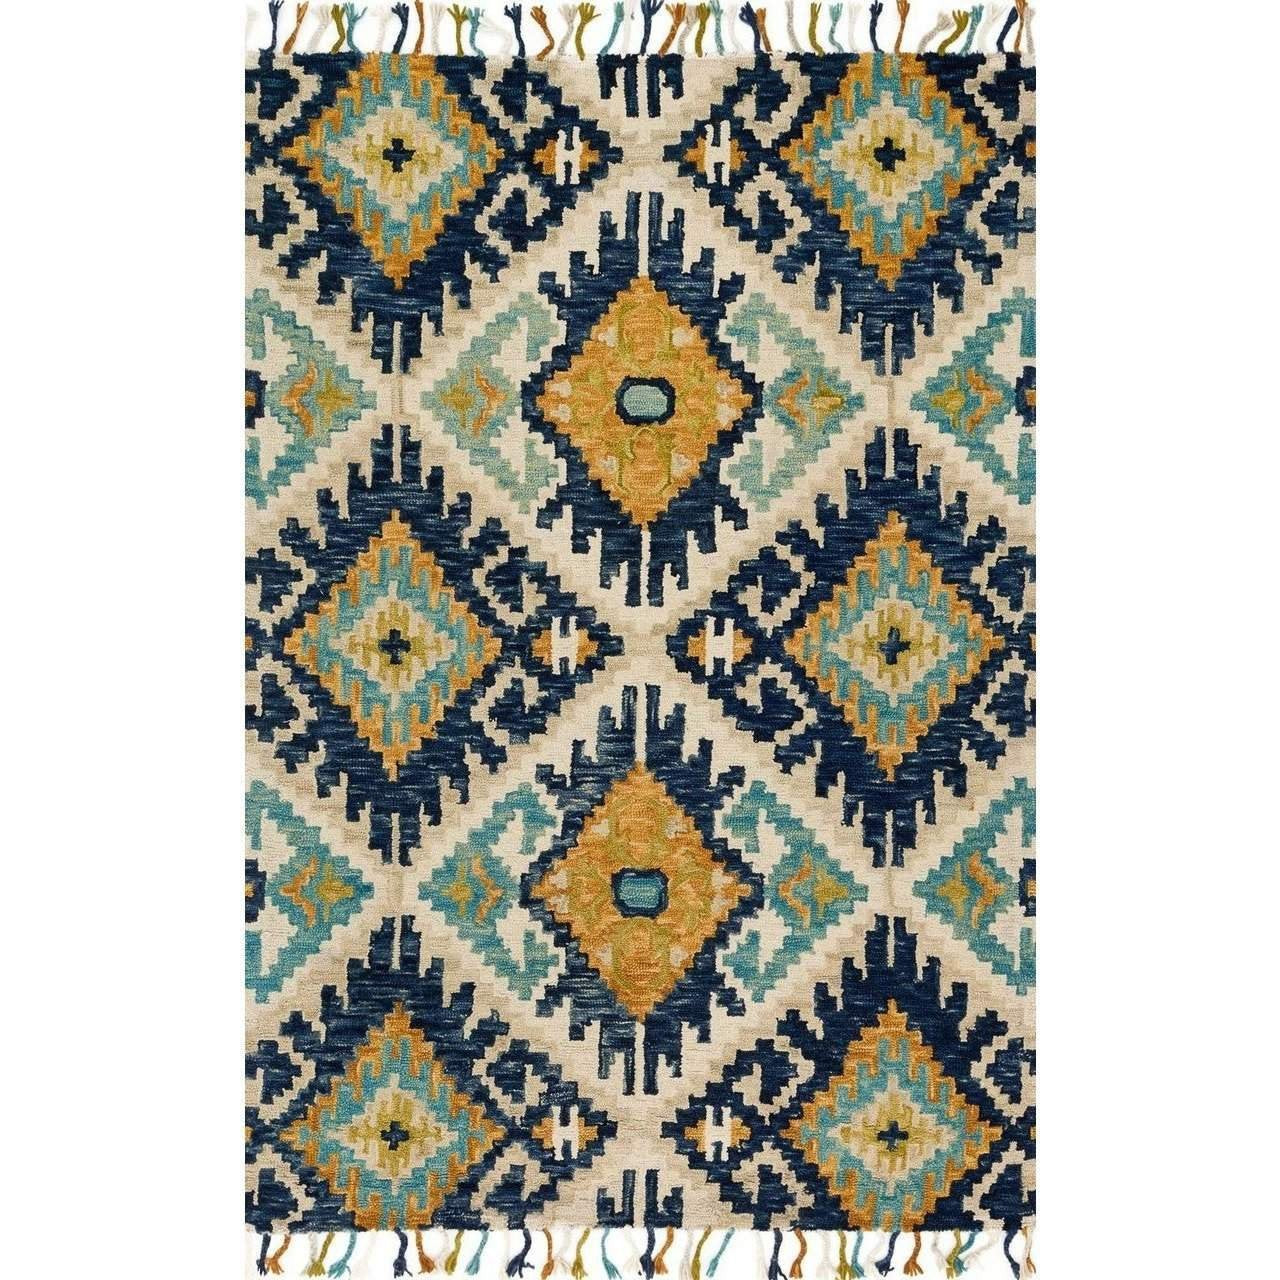 Joanna Gaines Rugs Of Magnolia Home Rug Collection